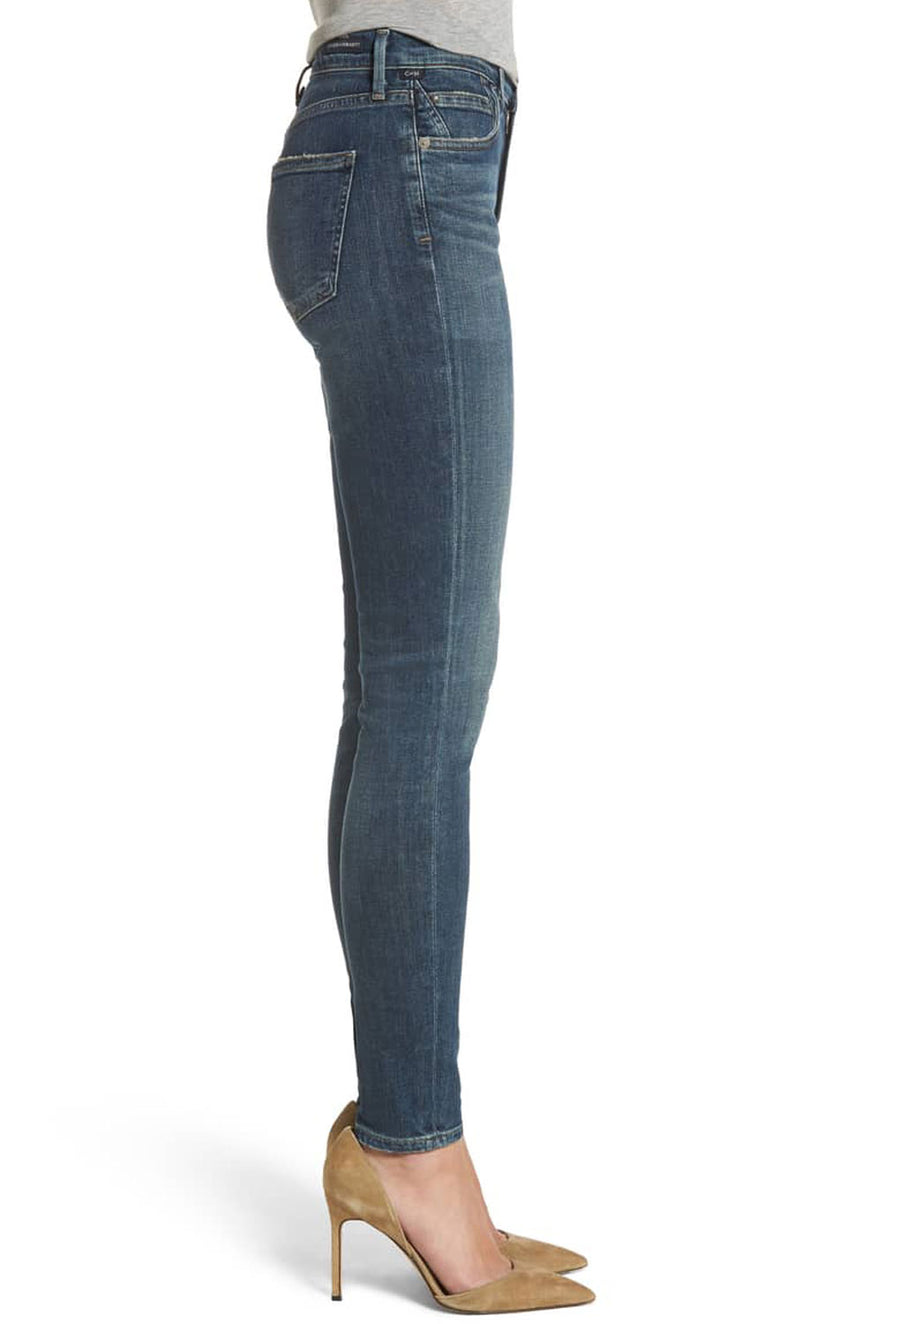 ROCKET HIGH RISE SKINNY - RIVAL